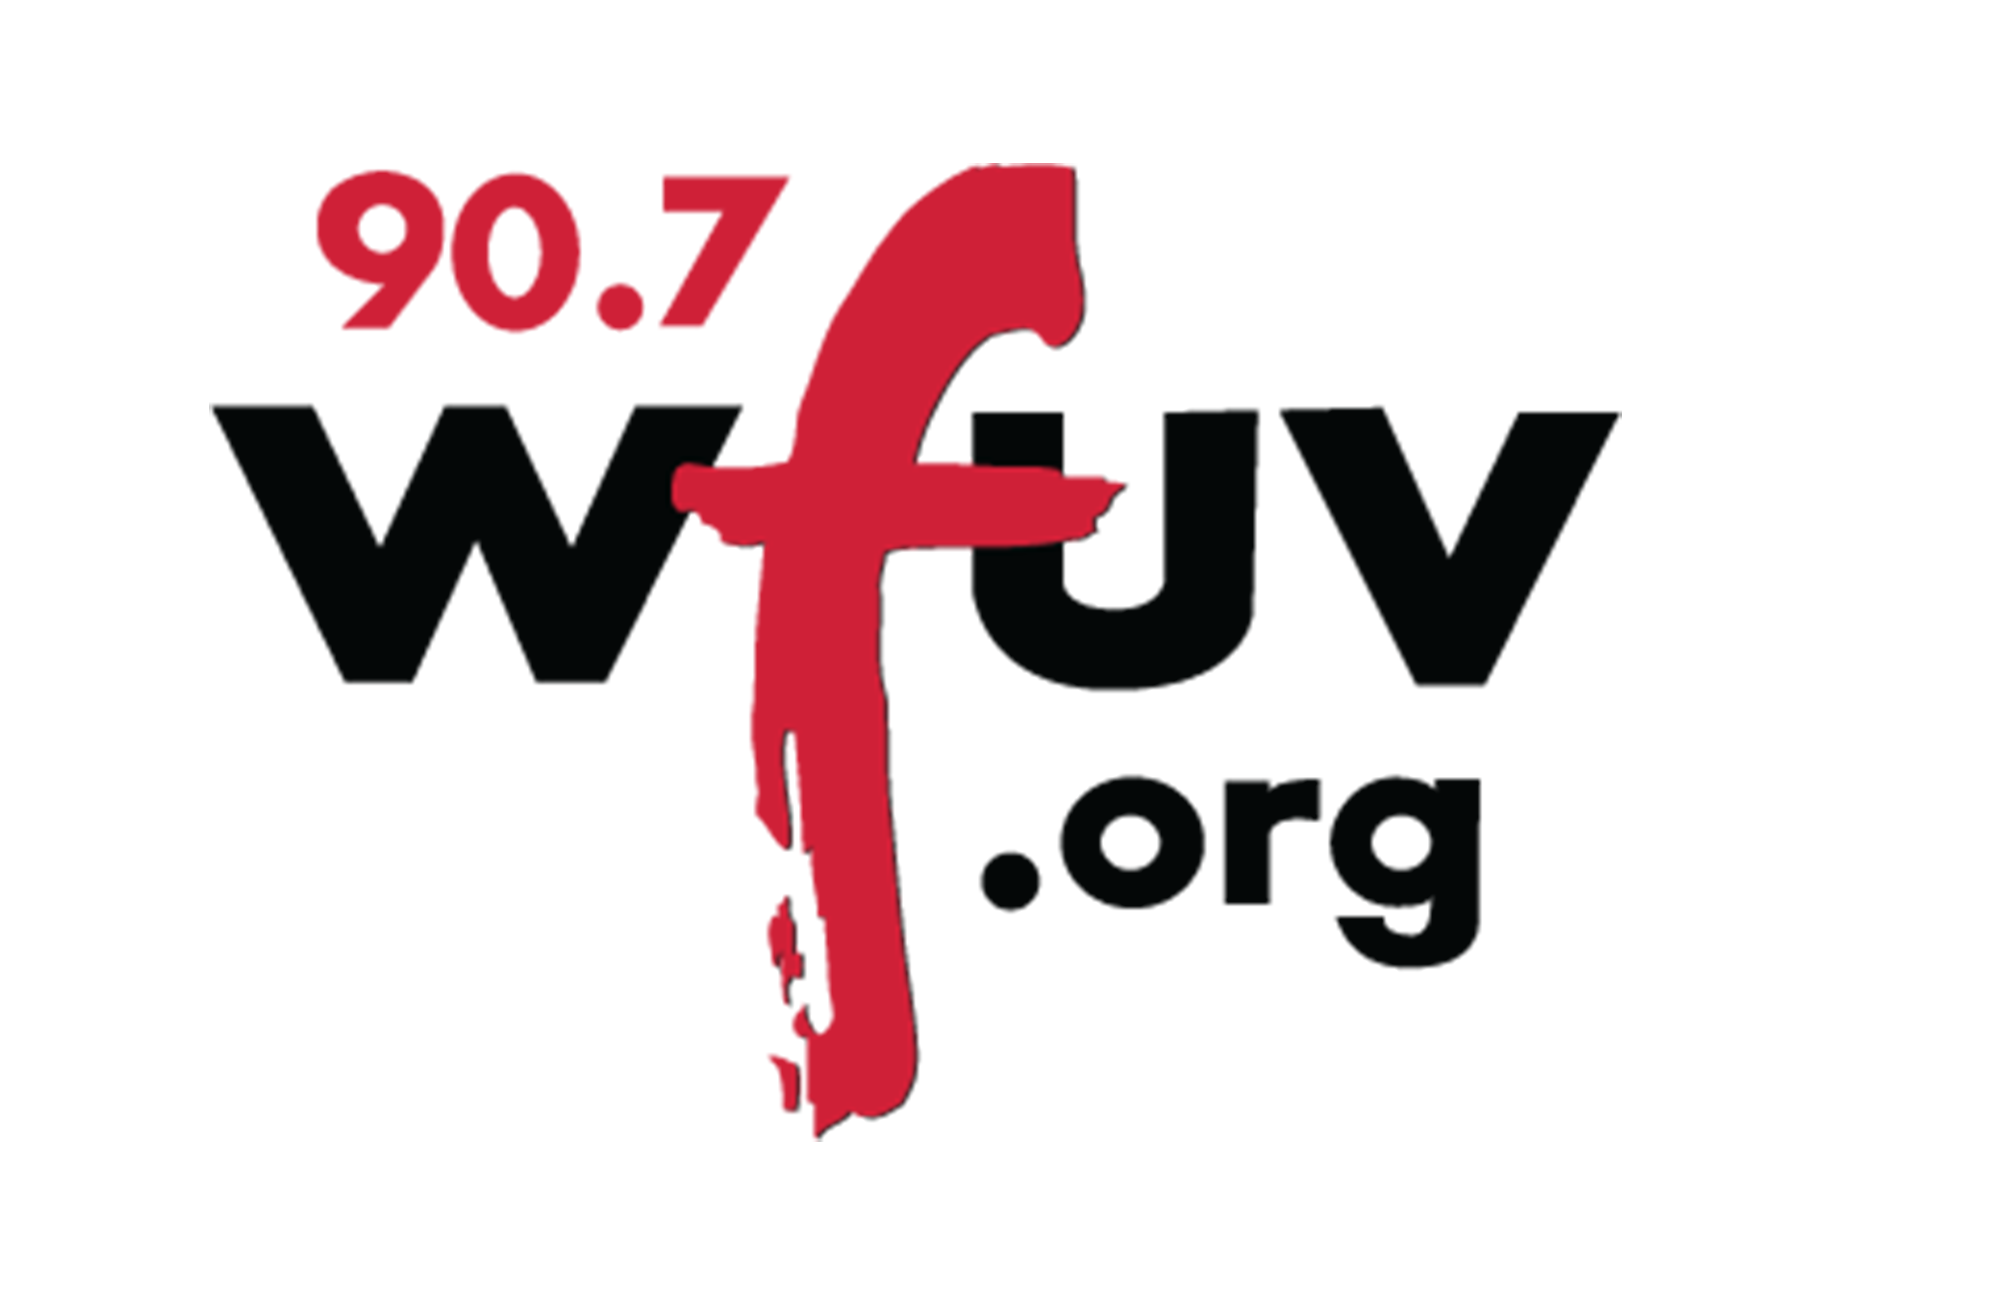 Sunday Supper - Sunday Supper, hosted by John Platt, airs weekly on WFUV, New York. Hear it live from 5-6pm on 90.7FM/wfuv.org or in the online archives.Select archival interviews also available here.